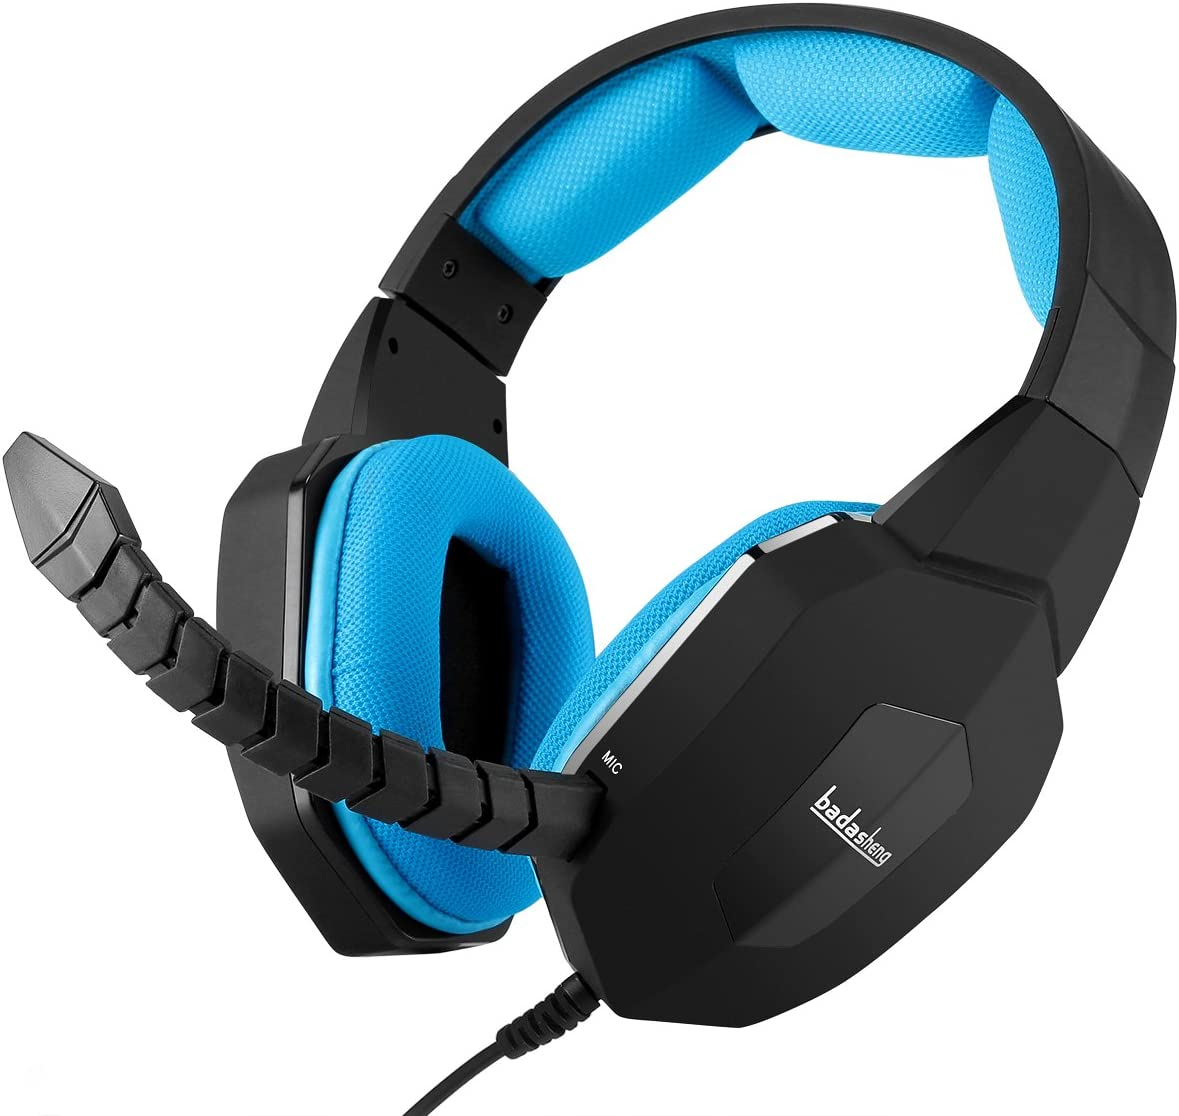 PS4 Xbox one 3.5mm Stereo Gaming Headset for Playstation 4 Xbox 1 PC Smartphone Tablet and Mac with Detachable Microphone